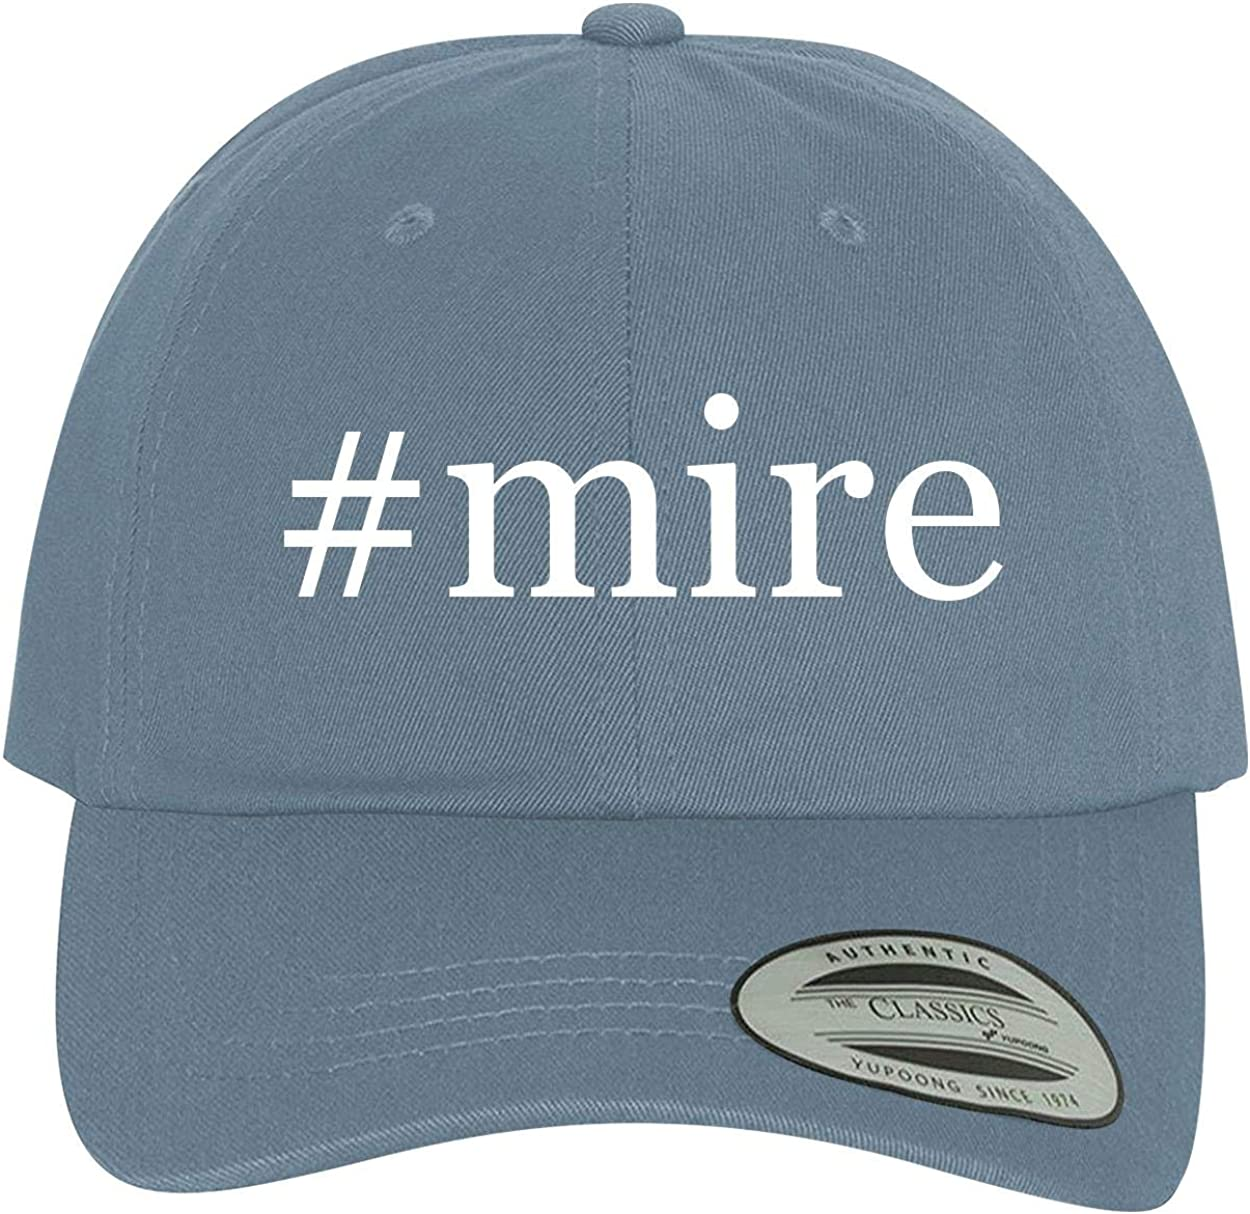 Comfortable Dad Hat Baseball Cap BH Cool Designs #mire